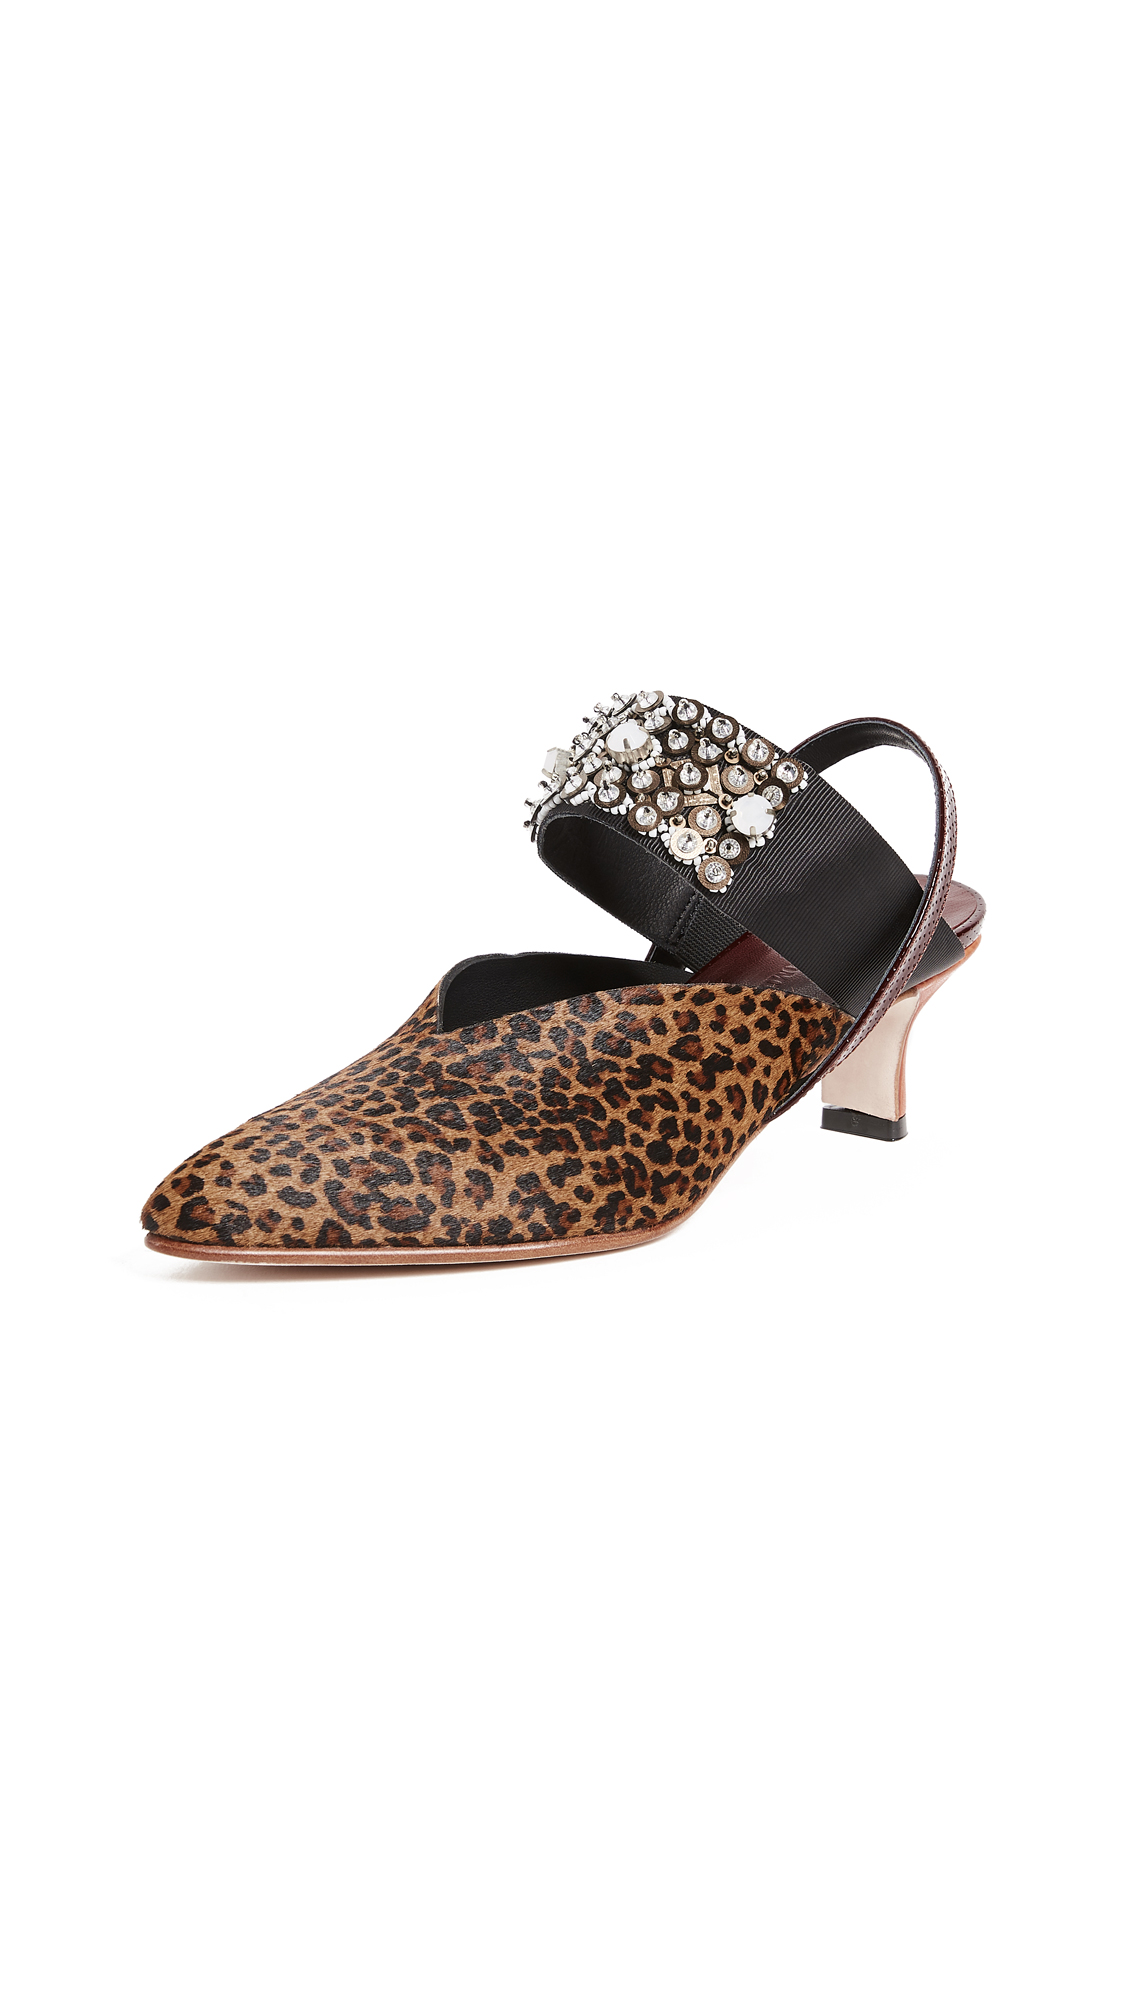 Rachel Comey Beaded Wext Kitten Heel Pumps - Leopard